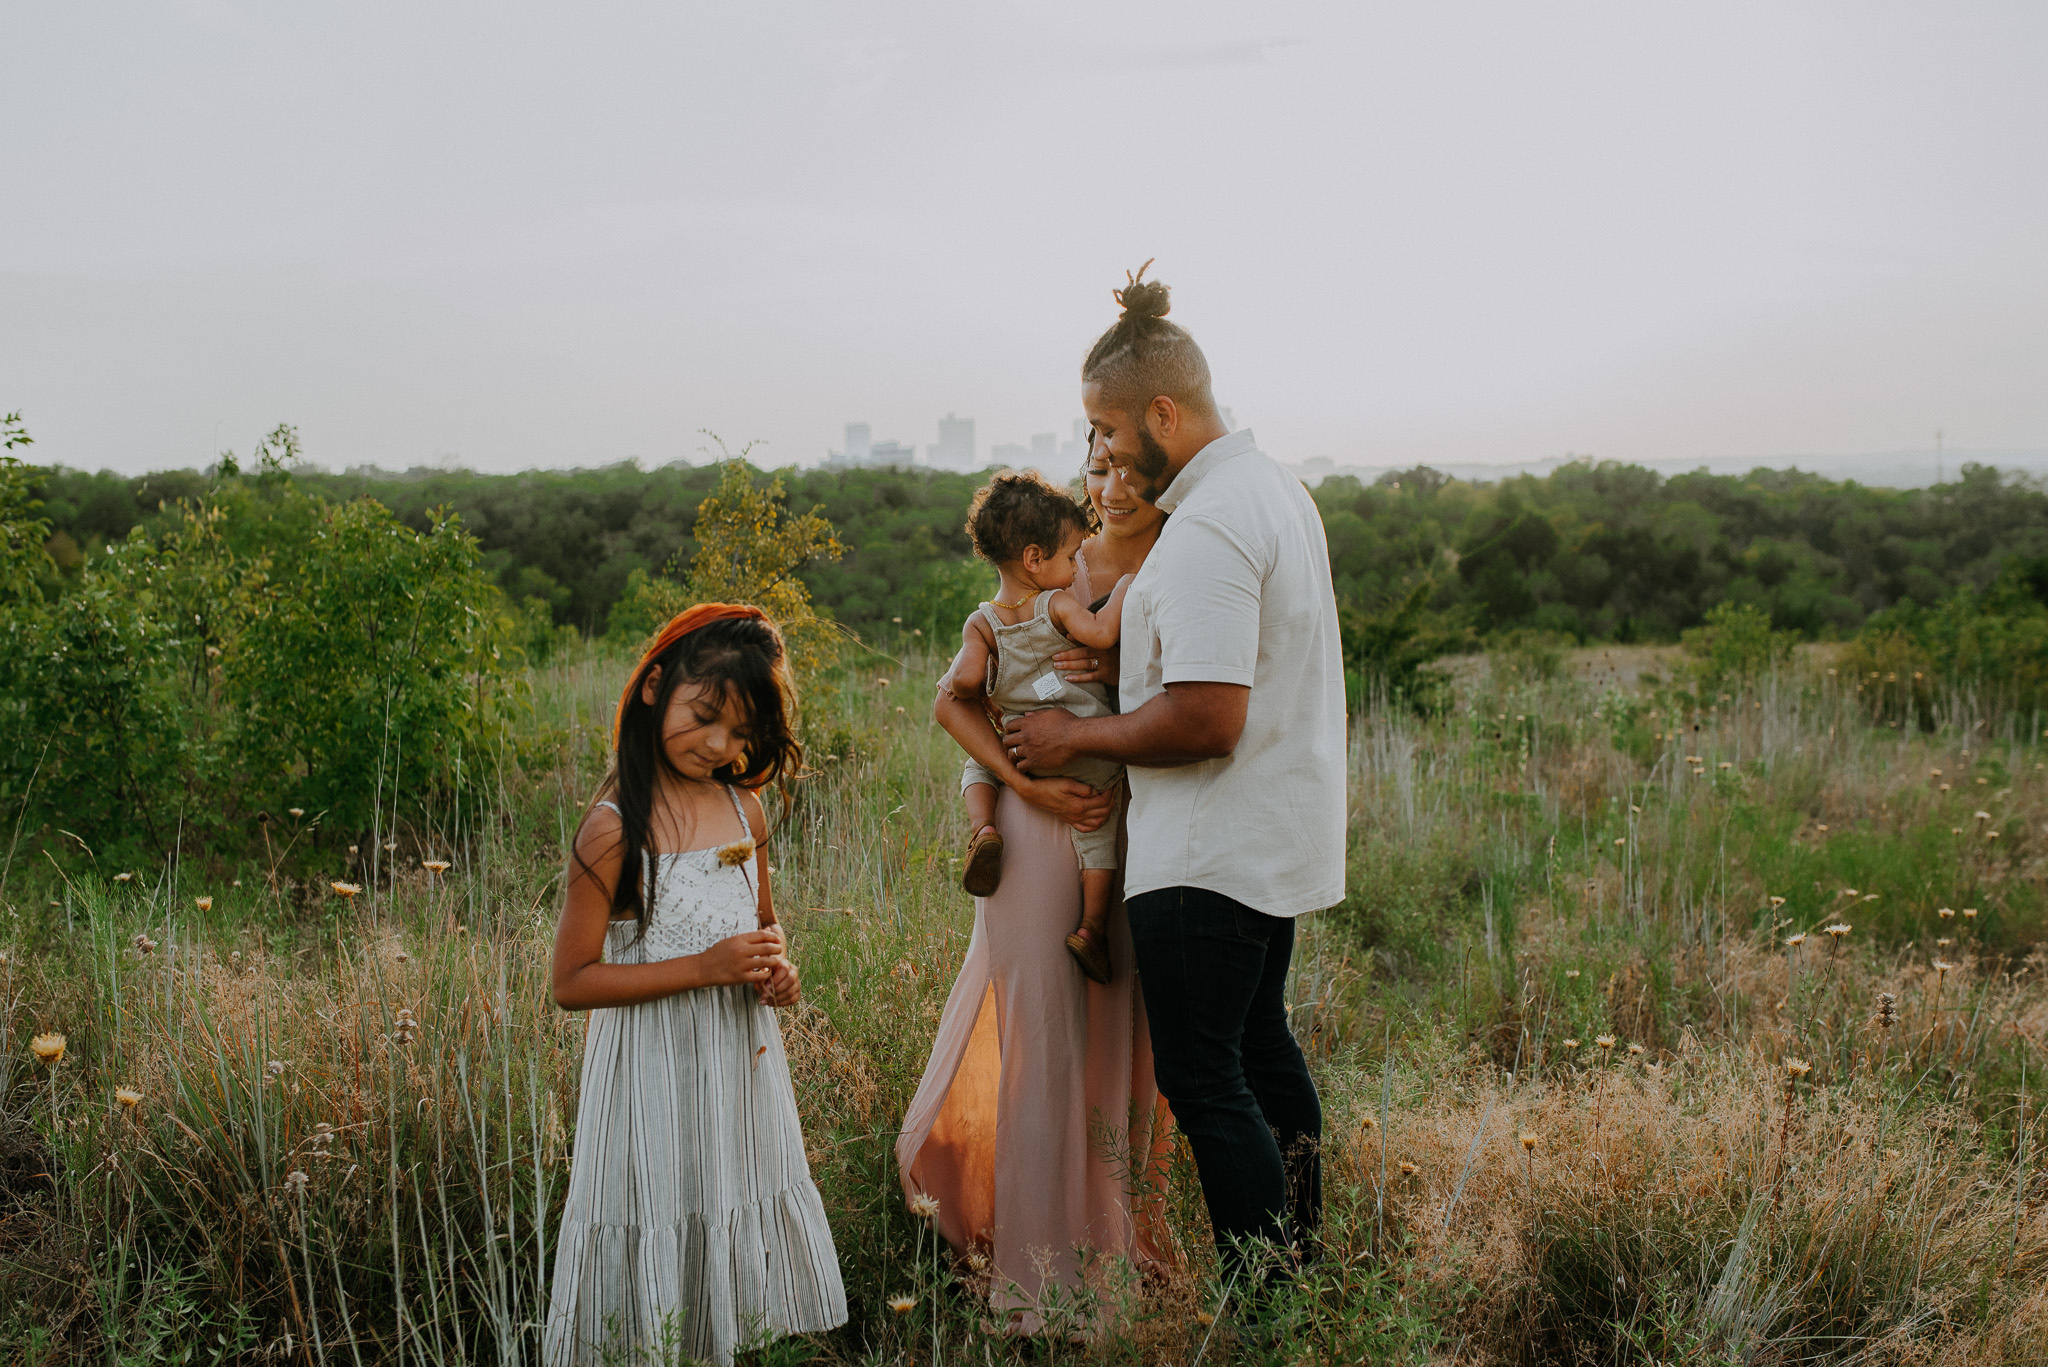 Jessi-marie-photography-dallas-fort-worth-texas-family-photographer-tandy-hills-natural-area-04